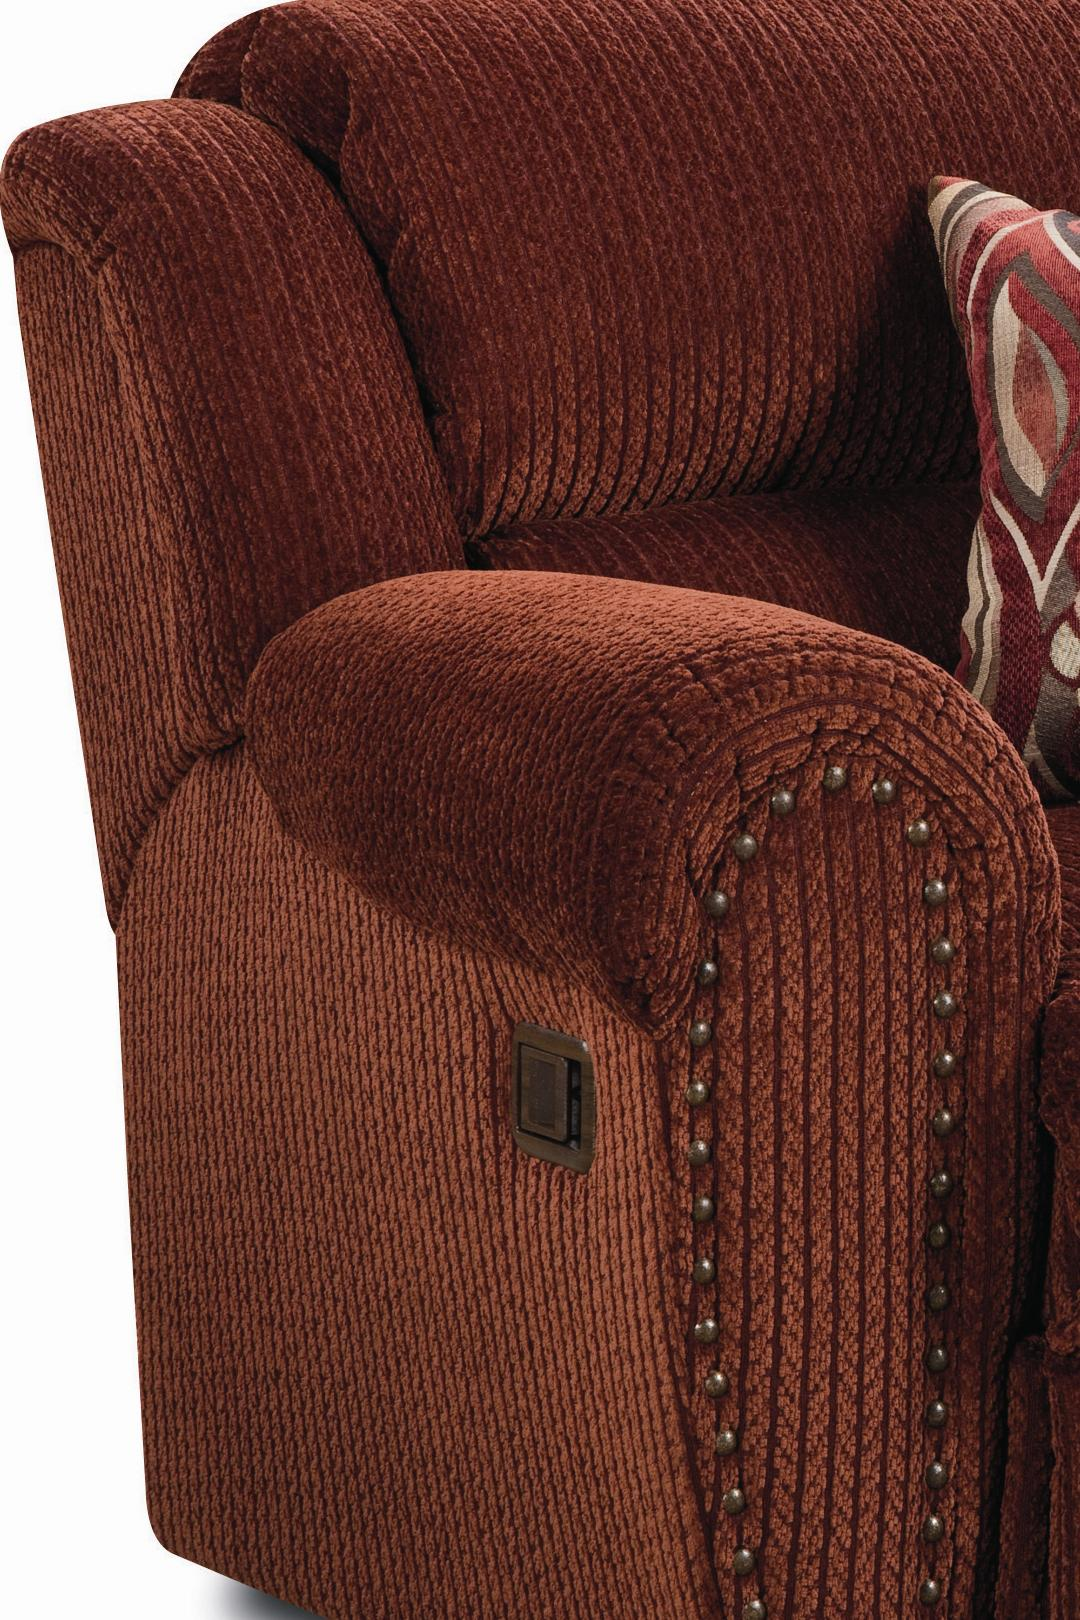 Lane Summerlin Snuggler Recliner with Rolled Arms and Nailhead Trim - Westrich Furniture u0026 Appliances - Three Way Recliner & Lane Summerlin Snuggler Recliner with Rolled Arms and Nailhead ... islam-shia.org